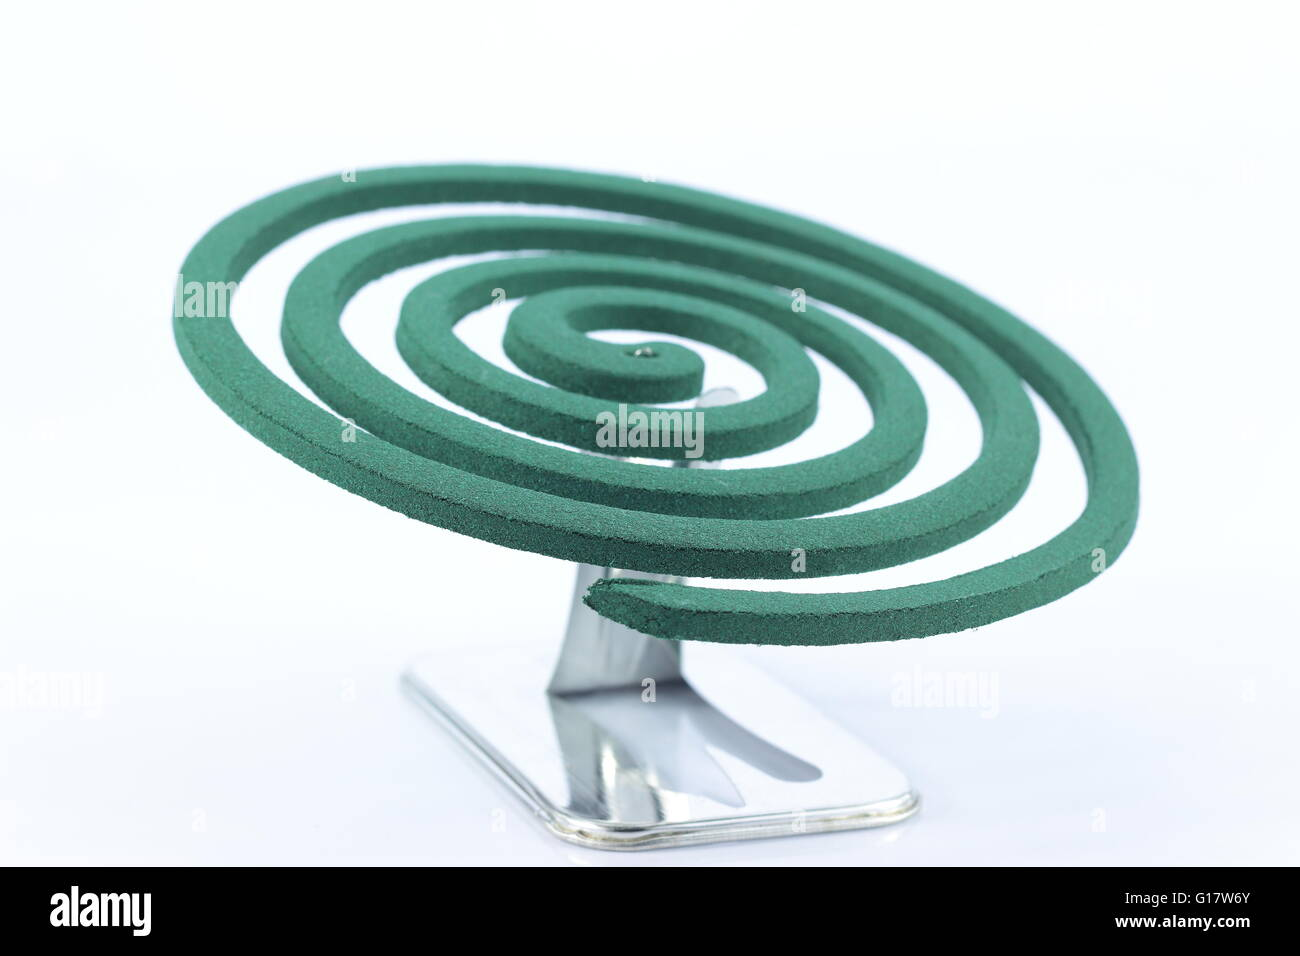 thai Mosquito repellent price inexpensive - Stock Image